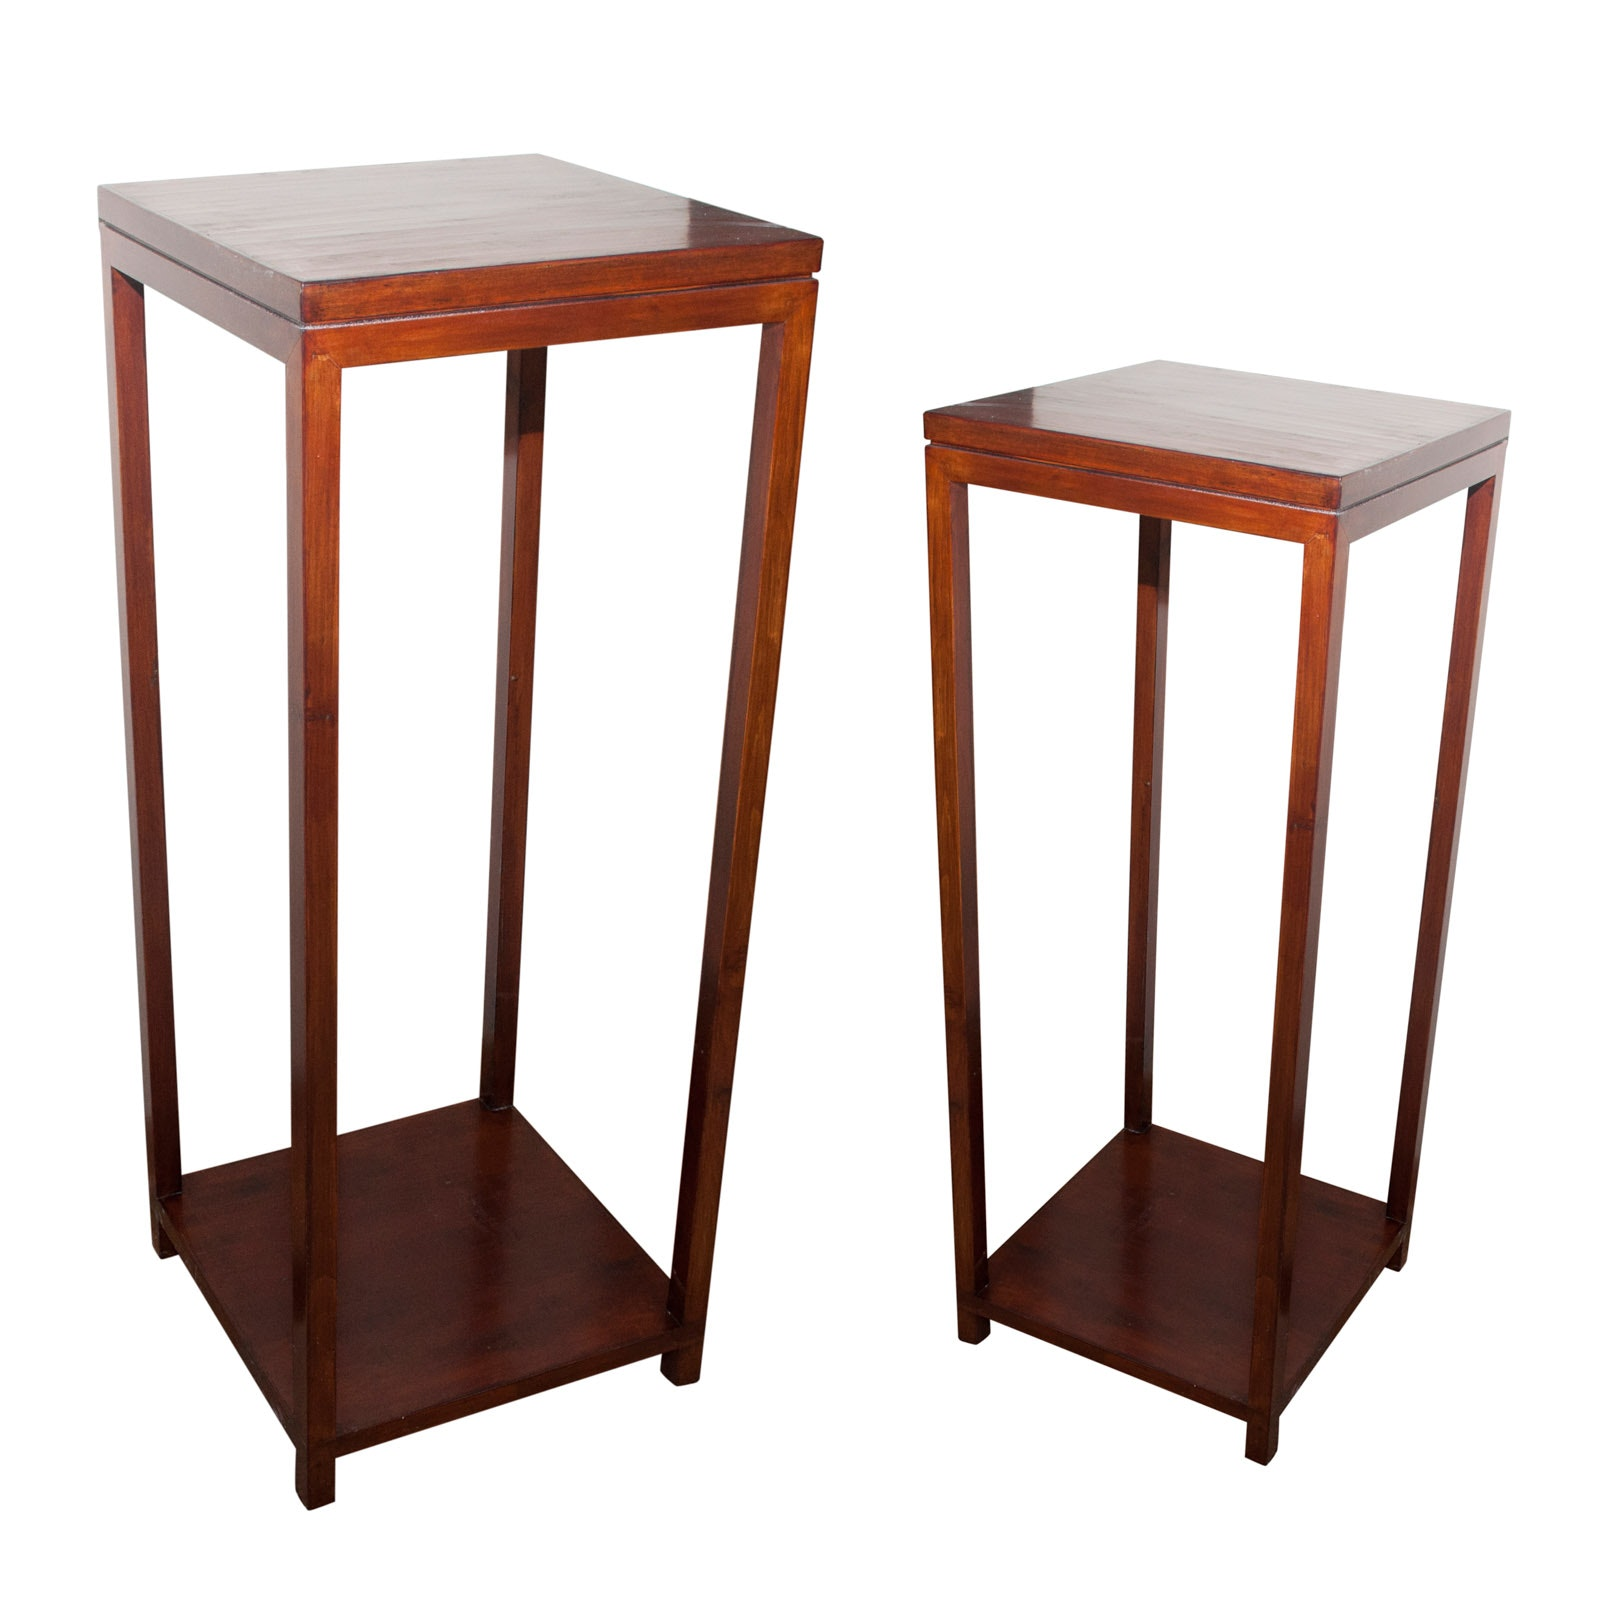 Pairing of Square Accent Tables